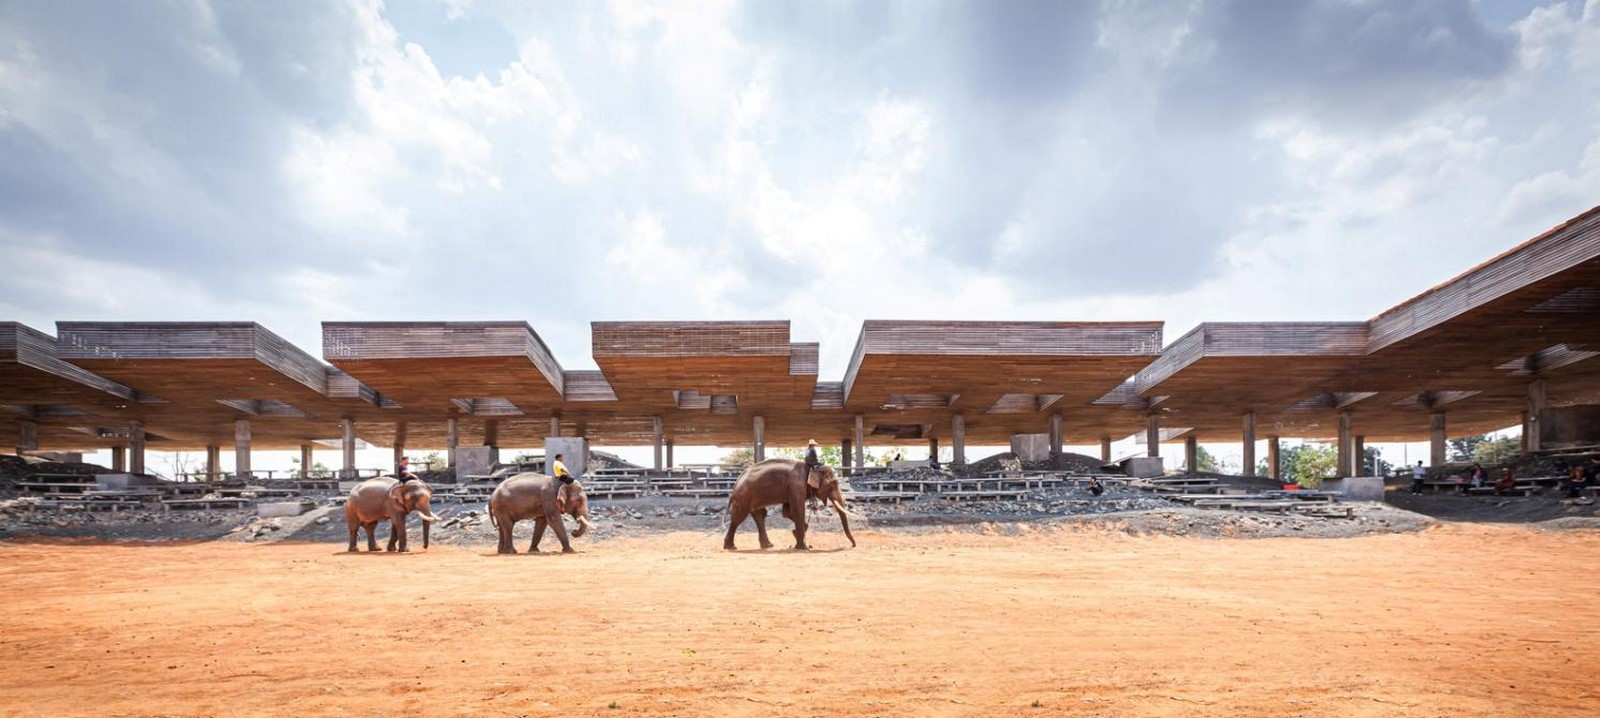 'Cultural courtyard' for elephants + humans in thailand created by Bangkok project studio- sheet1